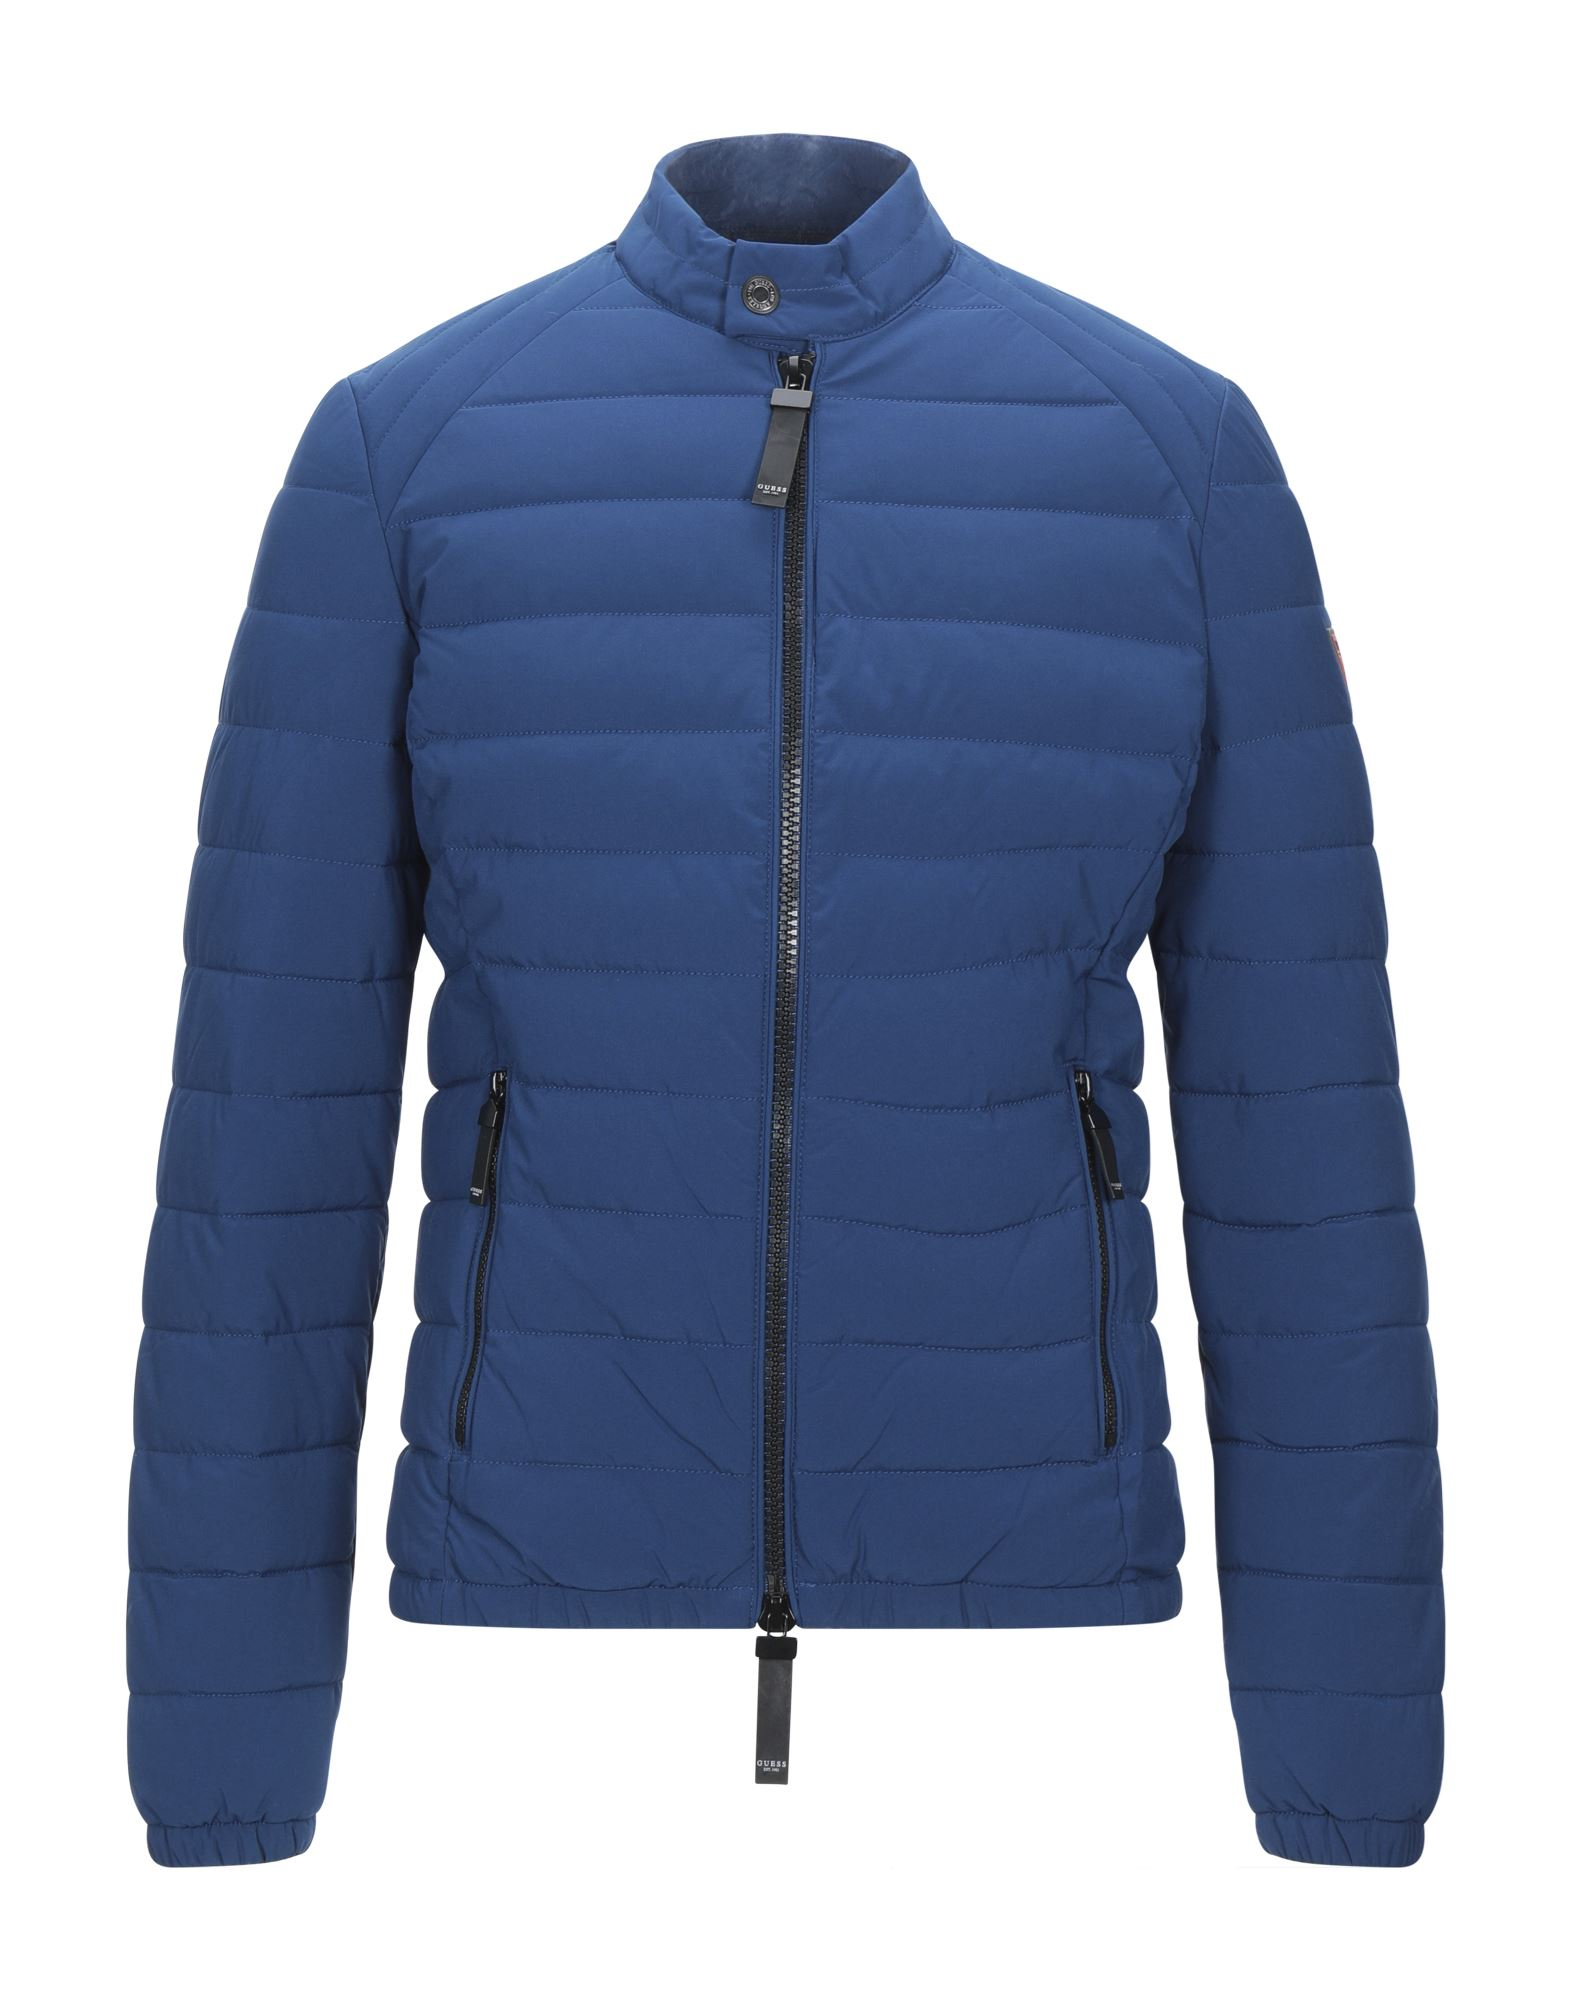 GUESS Synthetic Down Jackets - Item 41976229